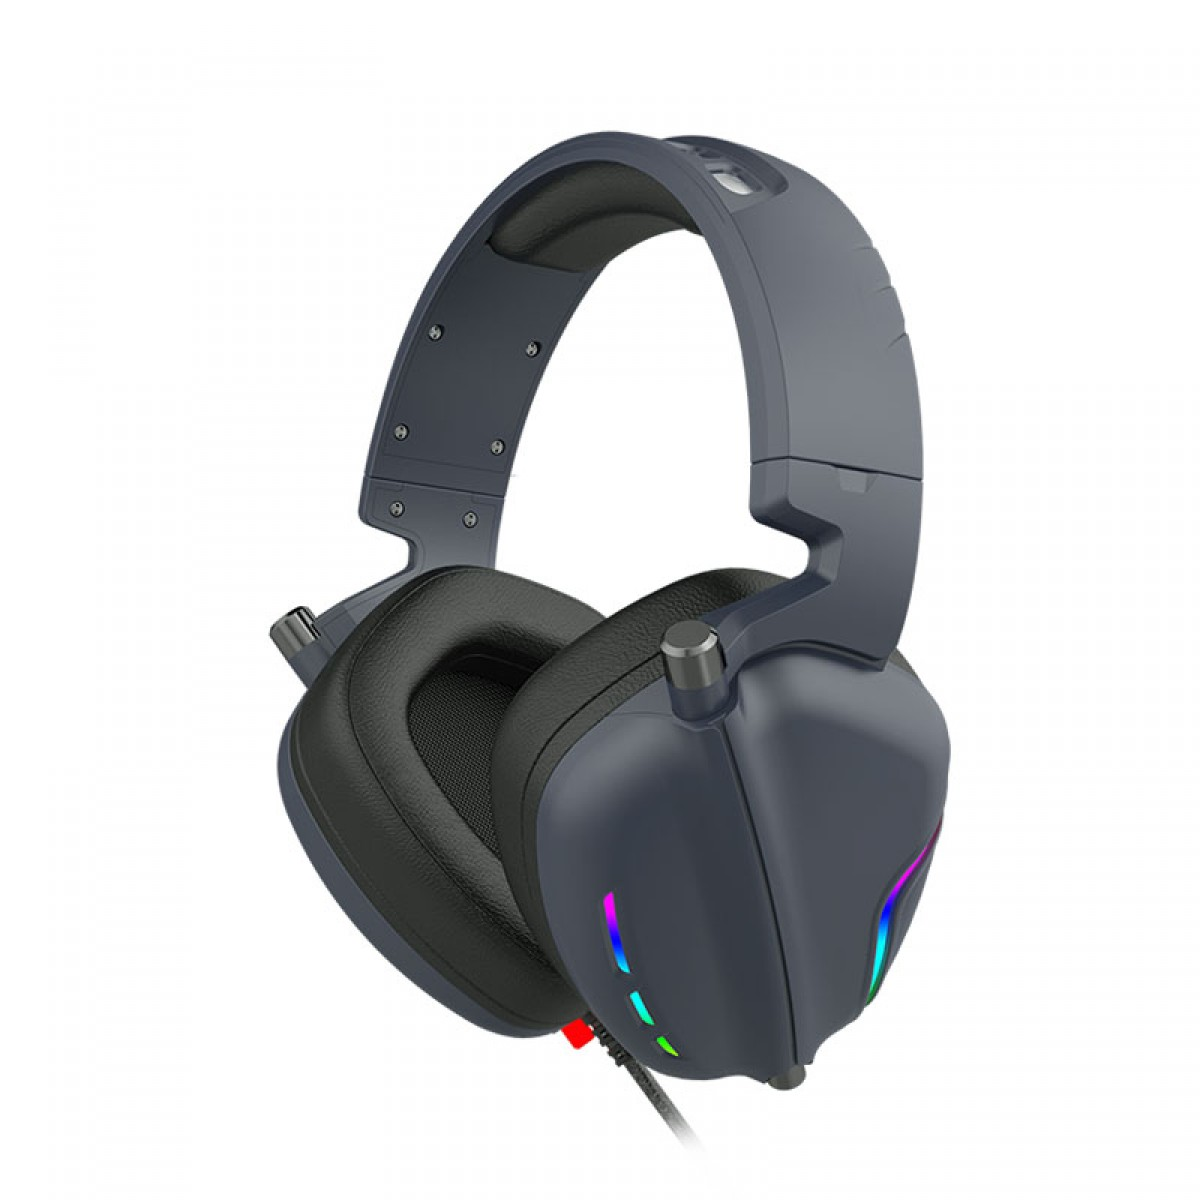 Headset Gamer Havit, RGB, 7.1 Surround, Black, H2019U